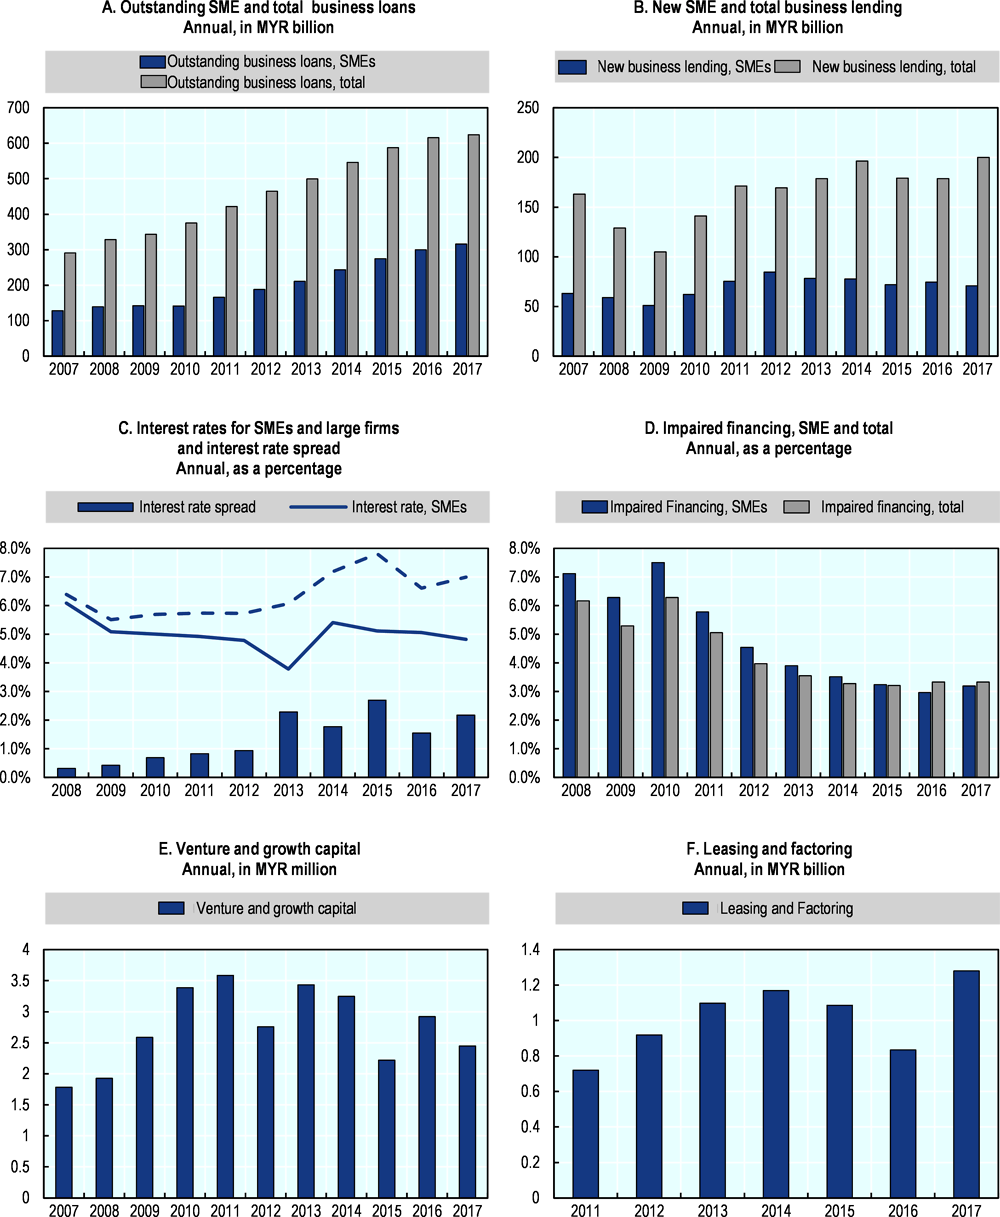 Figure 30.1. Trends in SME and entrepreneurship finance in Malaysia